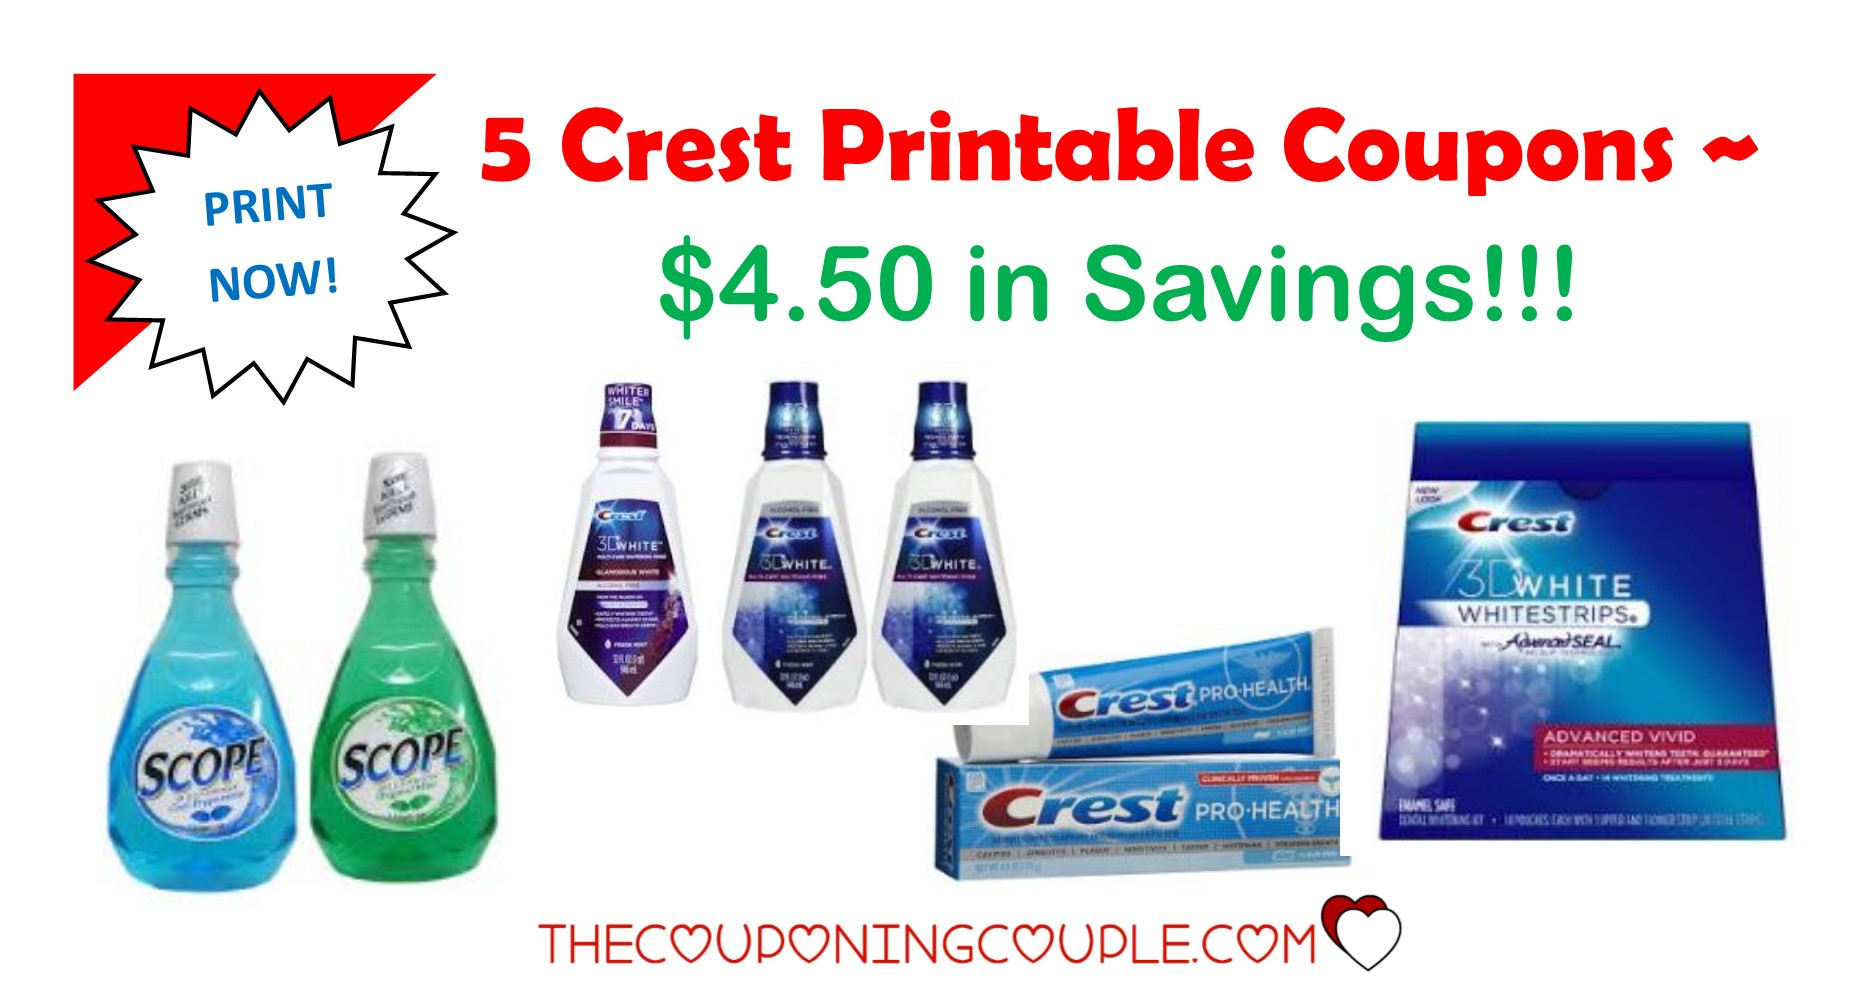 5 Crest Printable Coupons ~ $4.50 In Savings! Print Now!! - Free Printable Crest Coupons